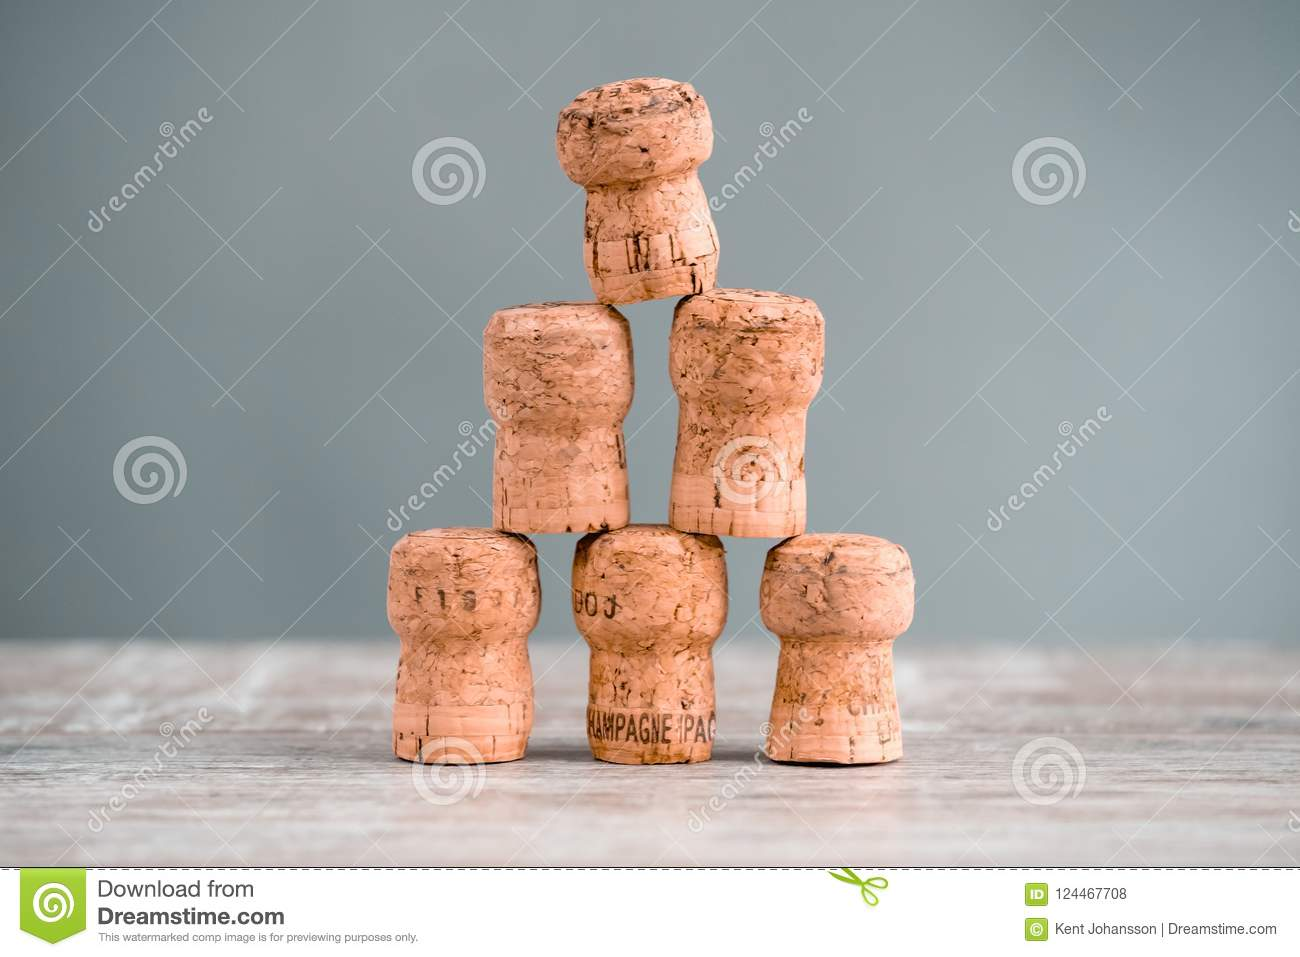 Five Champagne Corks Stapled as a Triangel